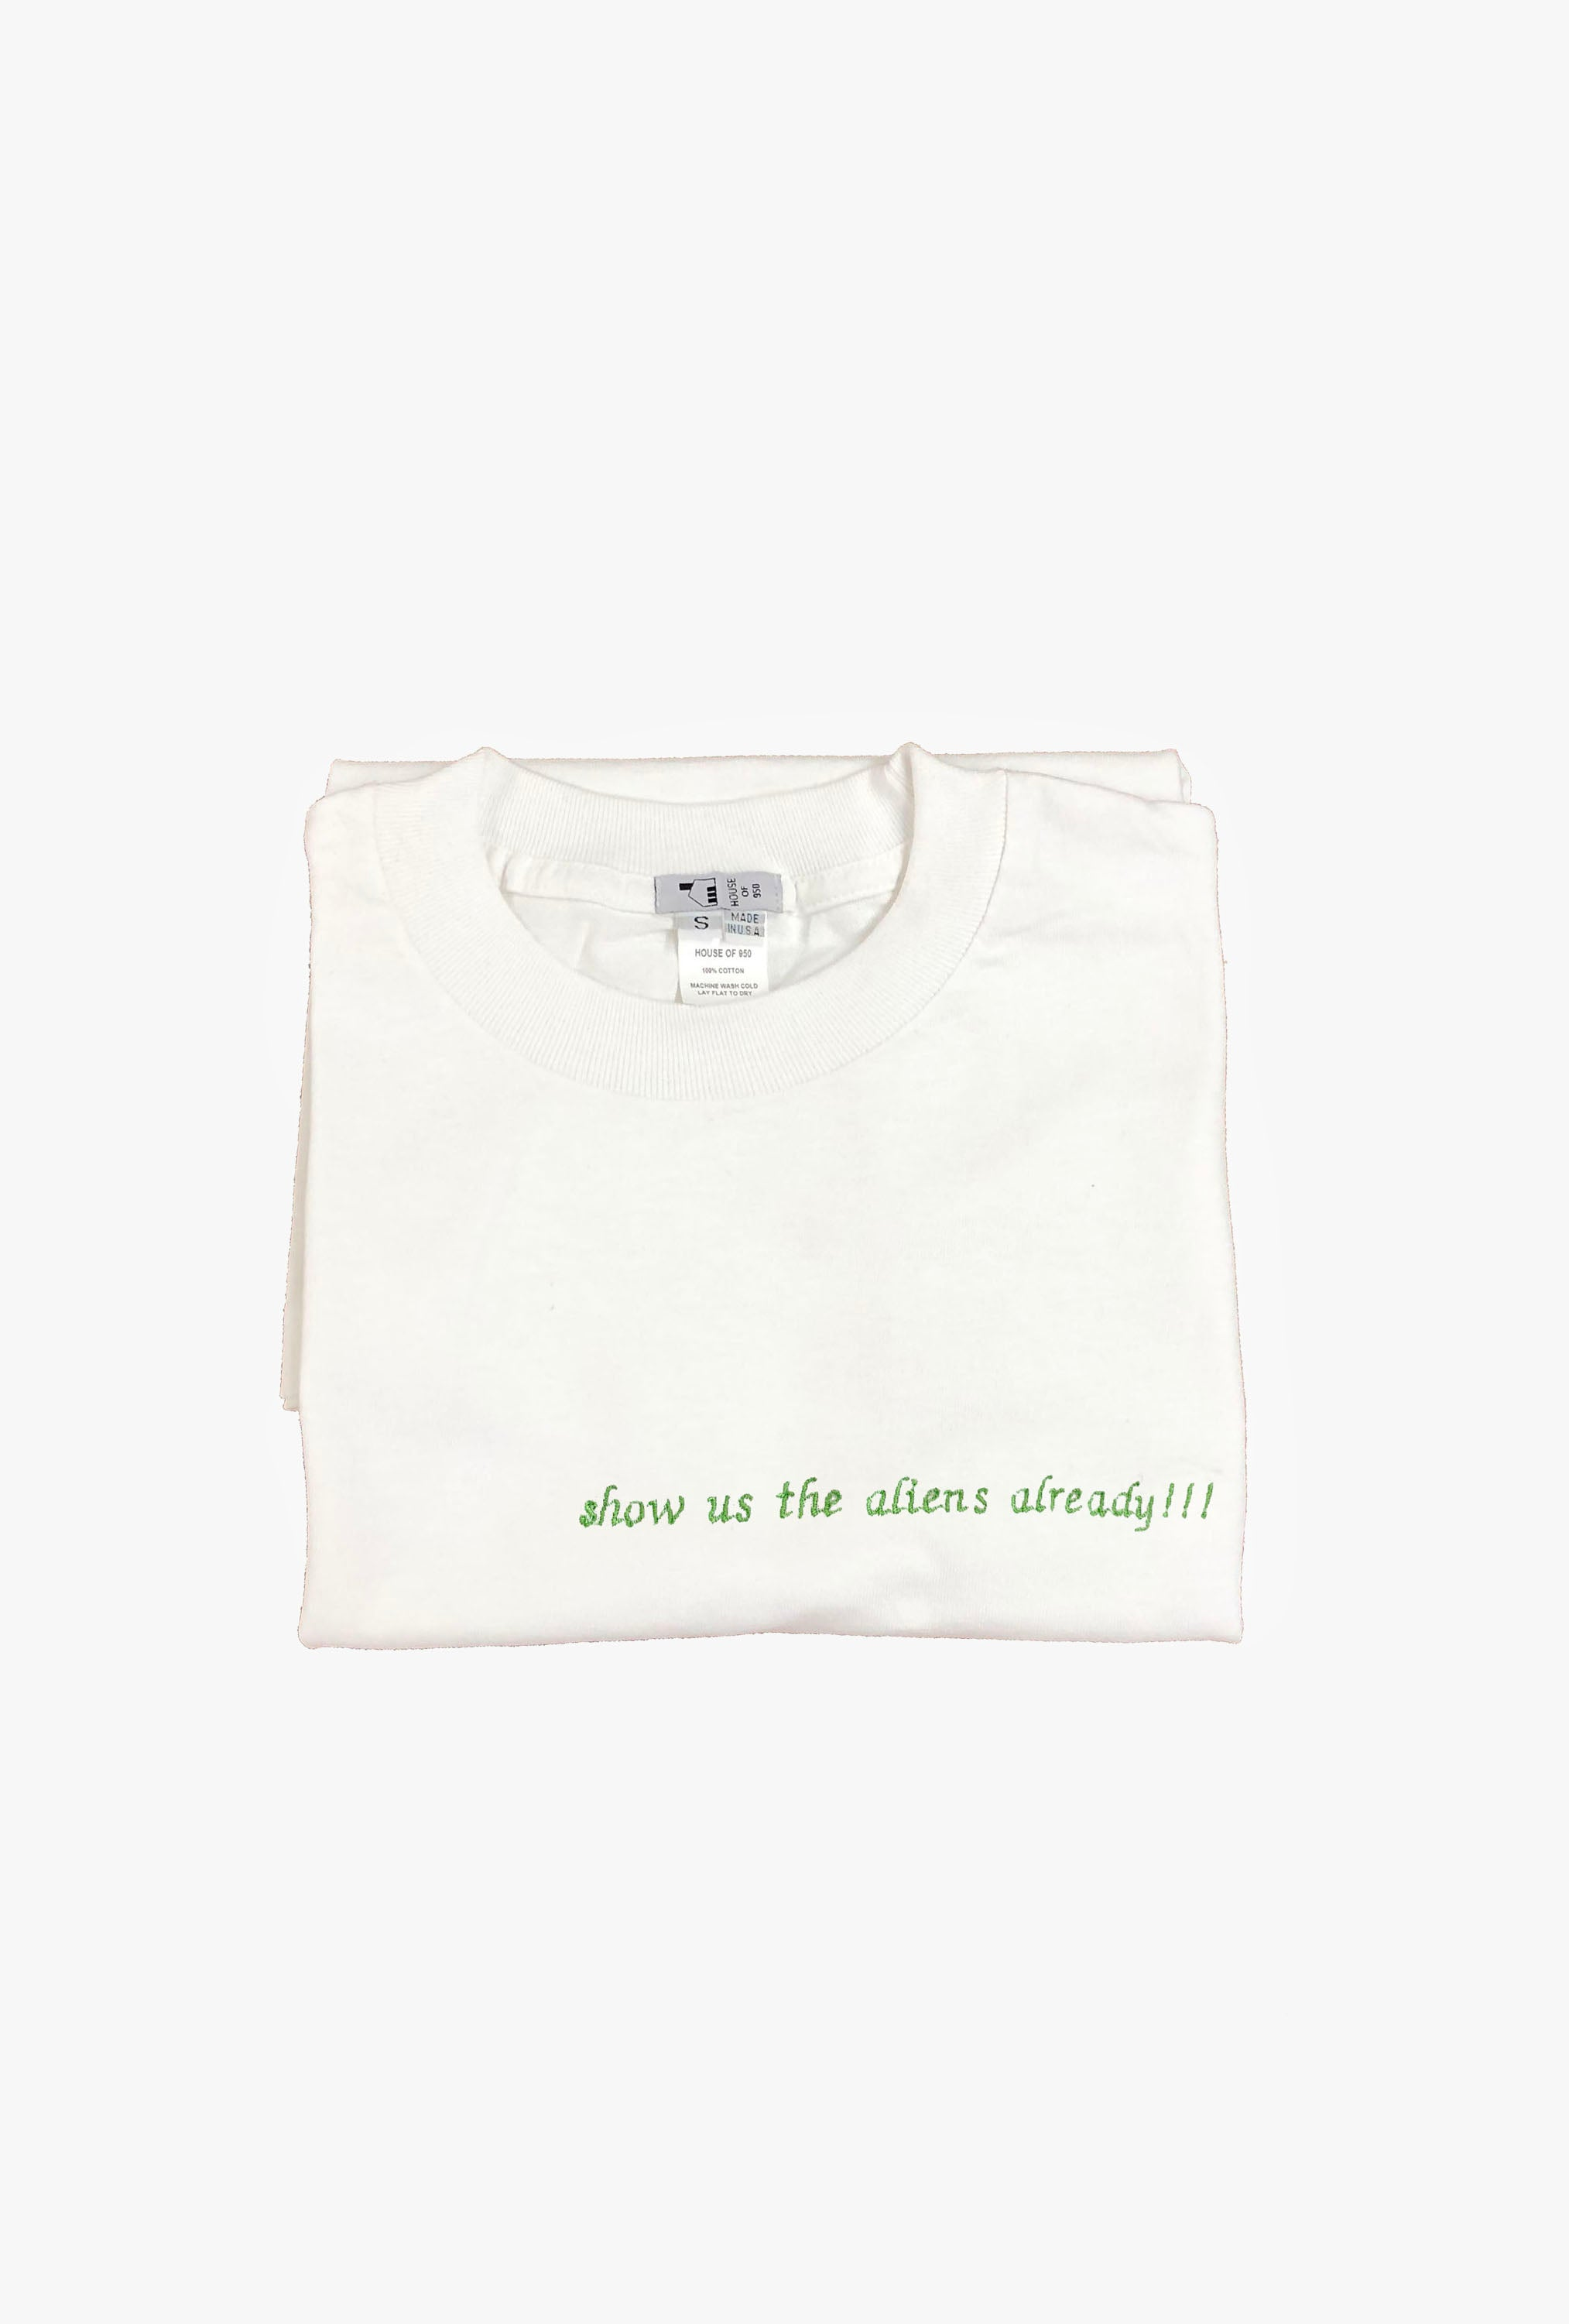 Show Us The Aliens Already!!! T-Shirt